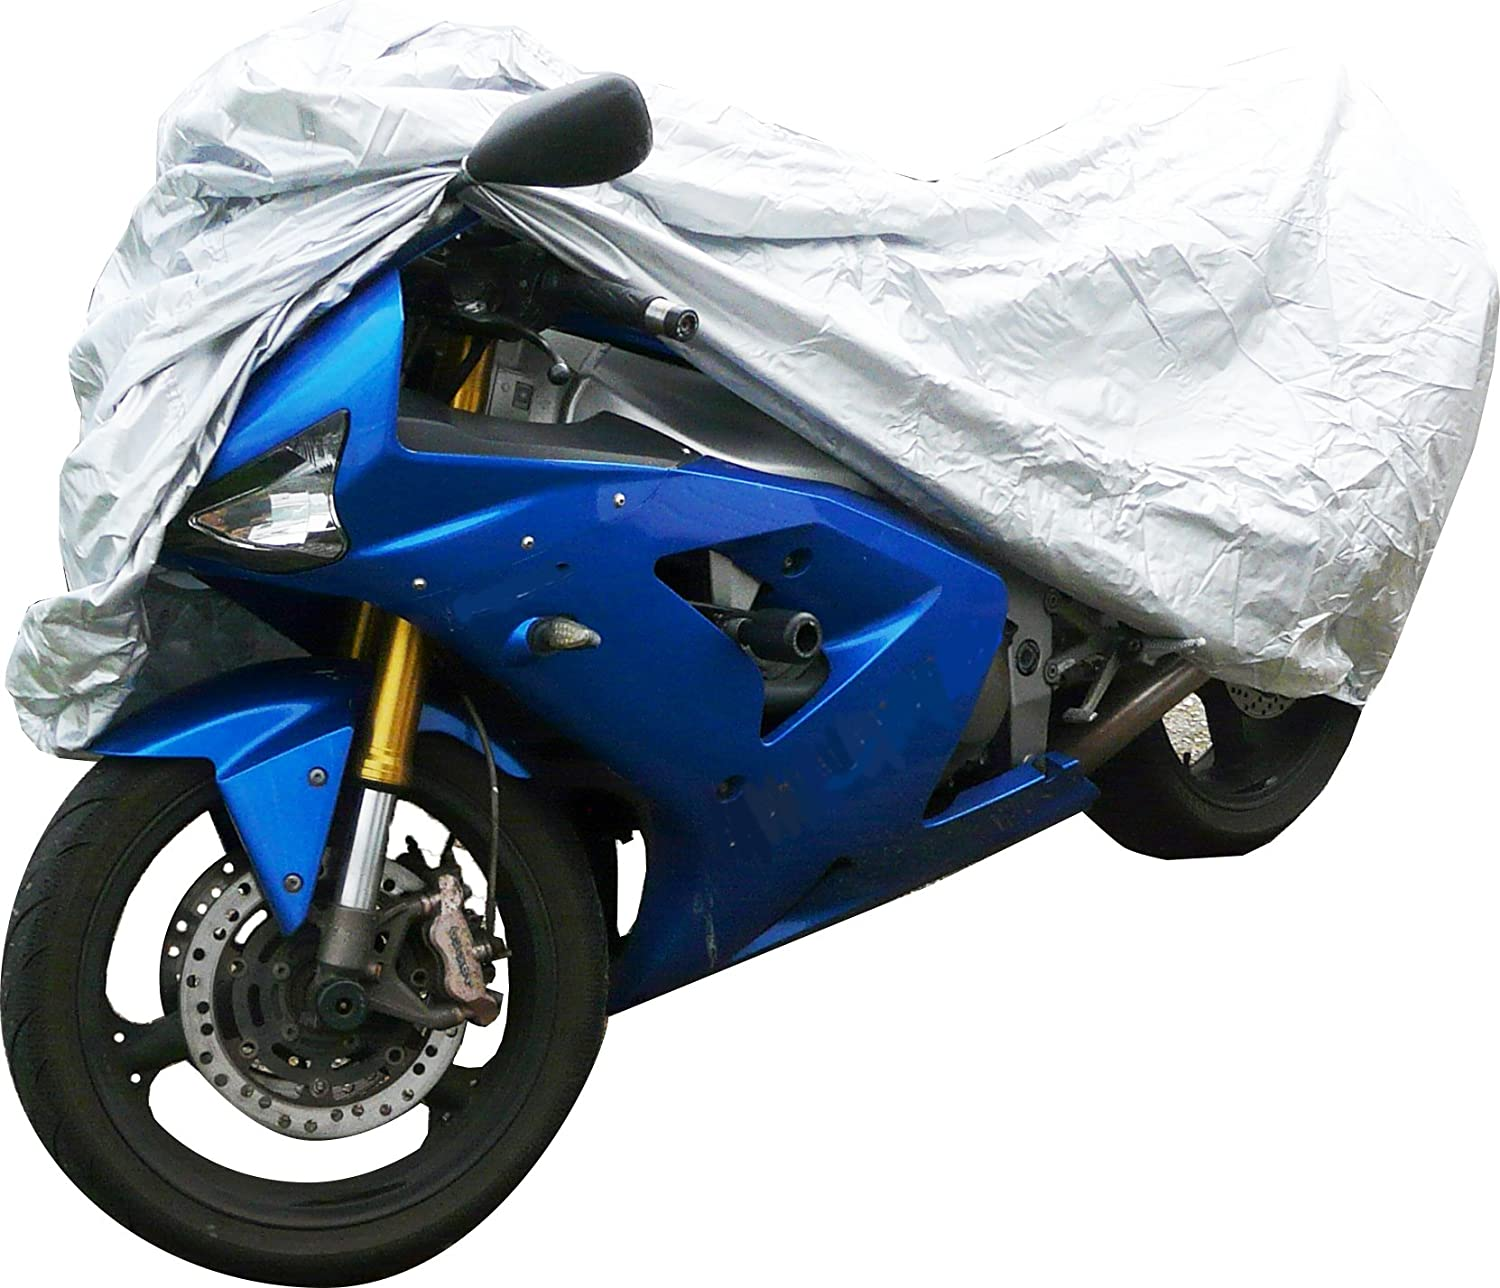 Up to 2.24m Polco POLC153 Water Resistant Motorcycle Cover-Medium